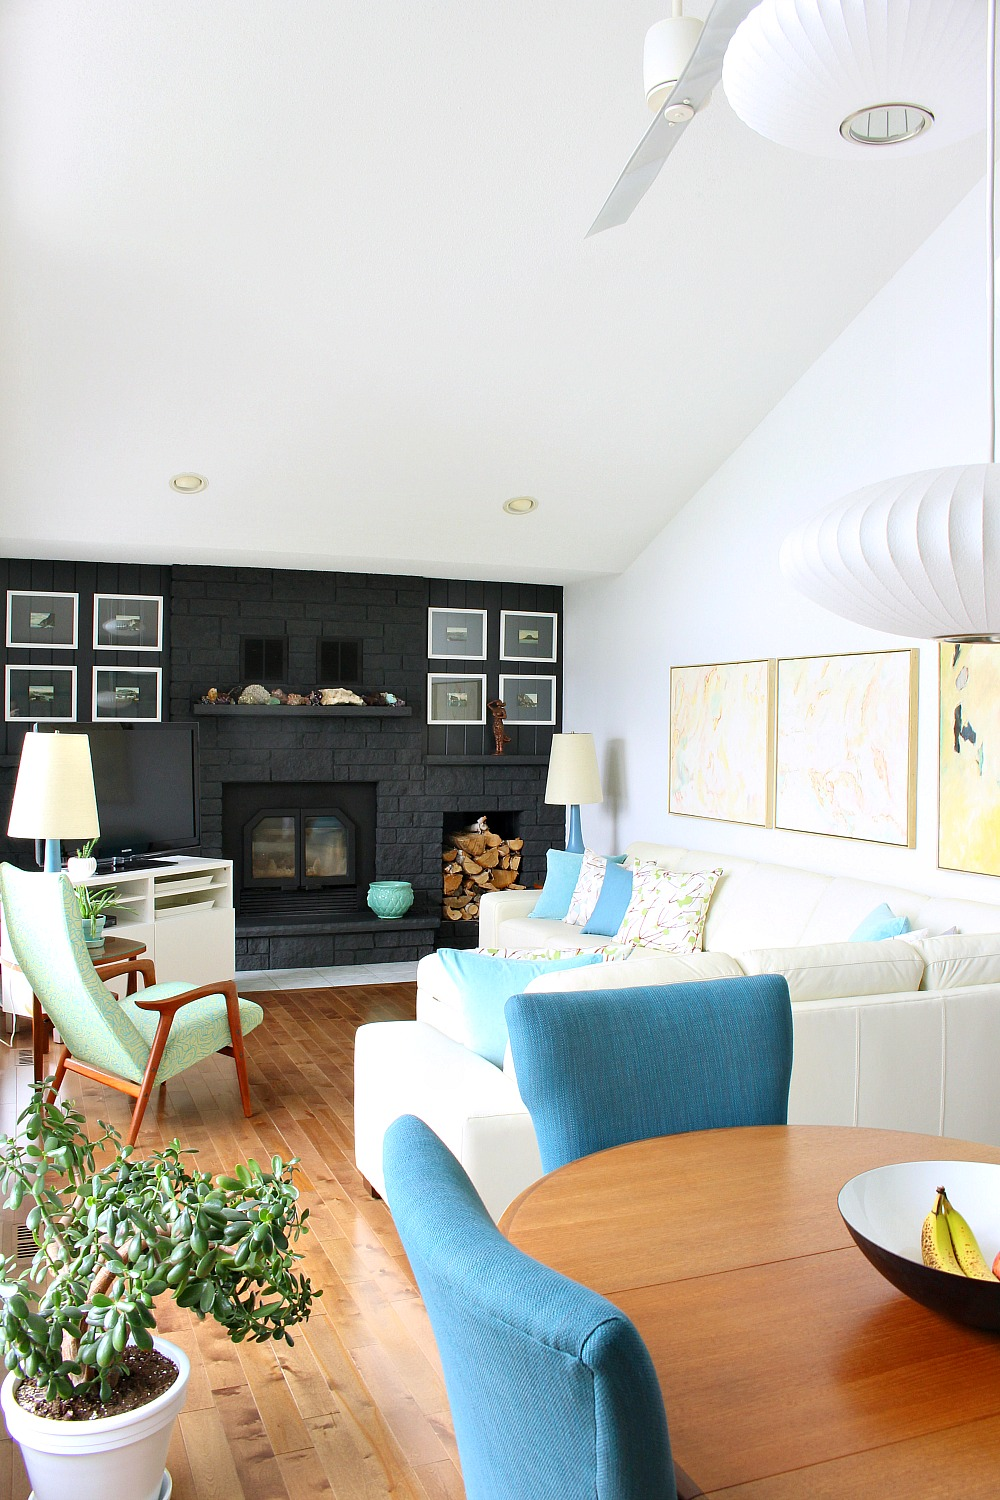 Lake House Living Room Decorated in Turquoise and Blue